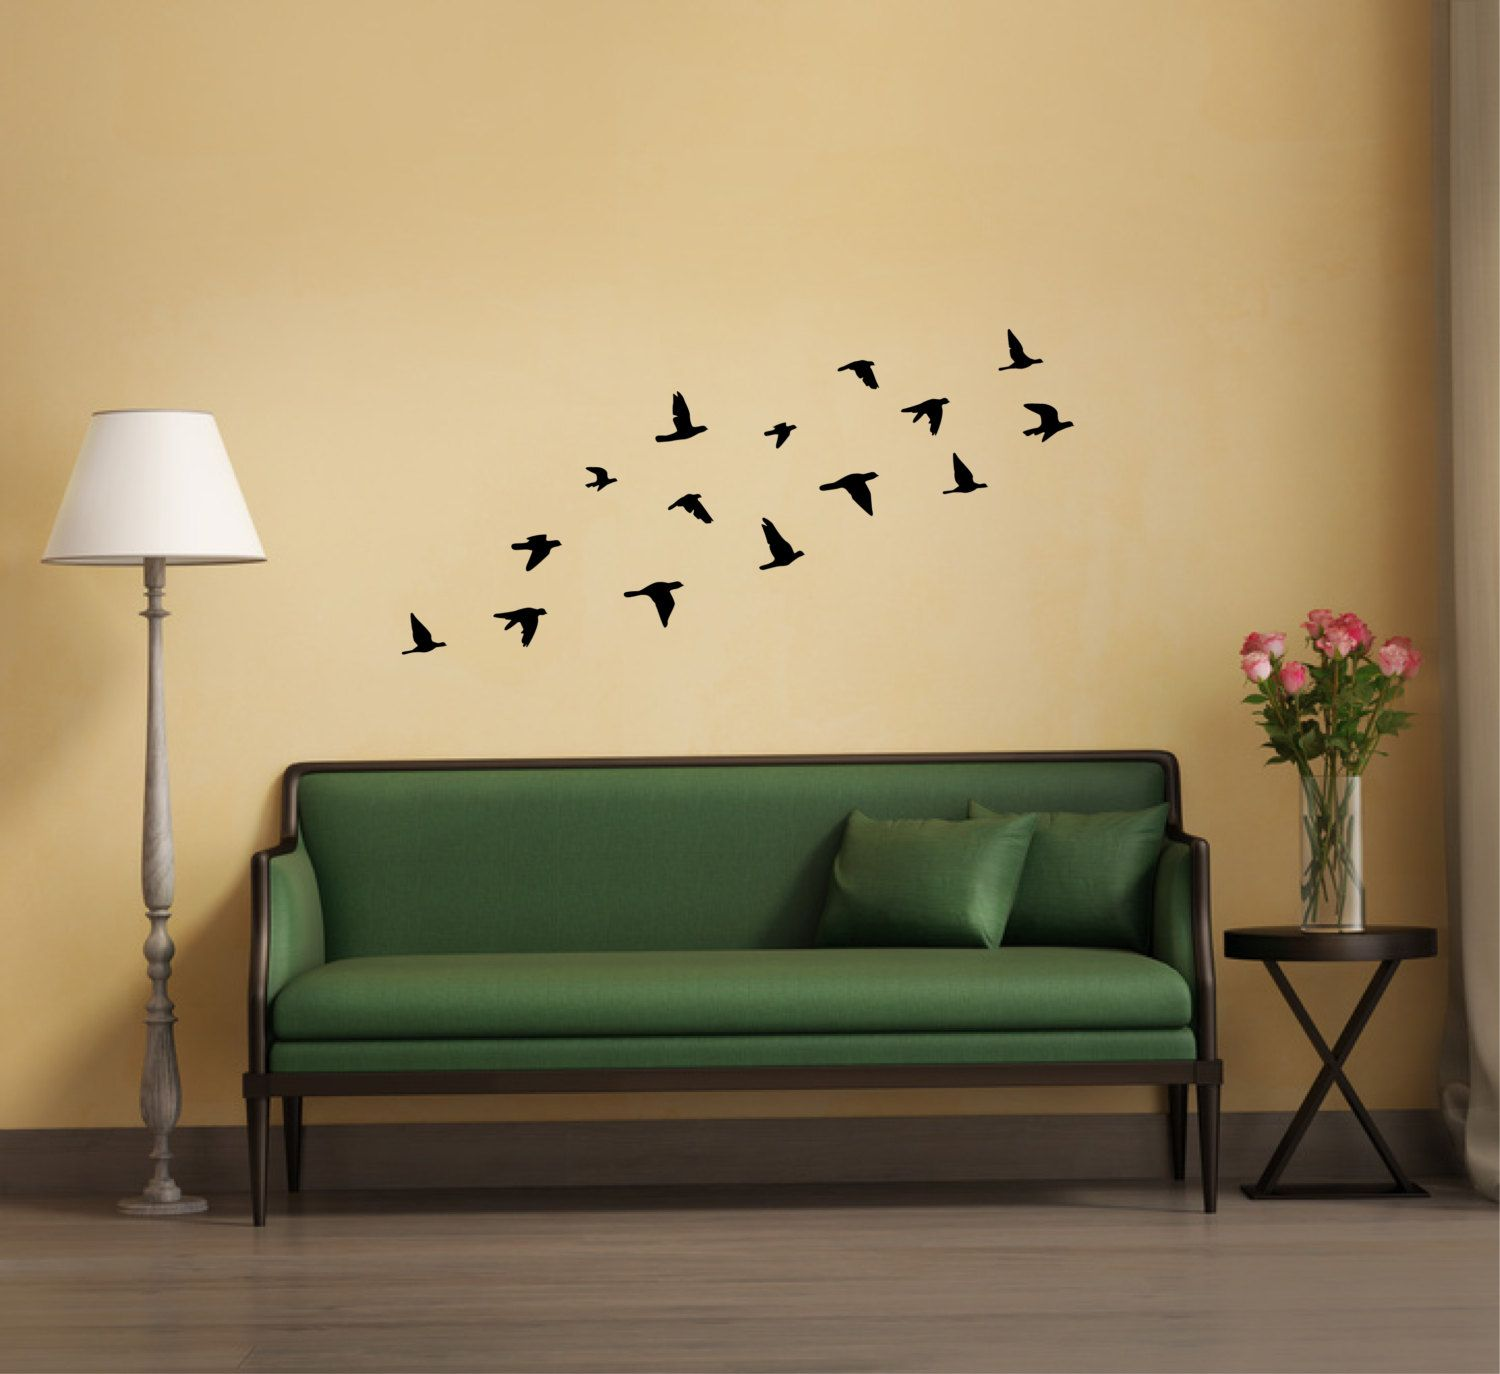 Bird wall decor flying birds wall sticker silhouette flock of birds ...